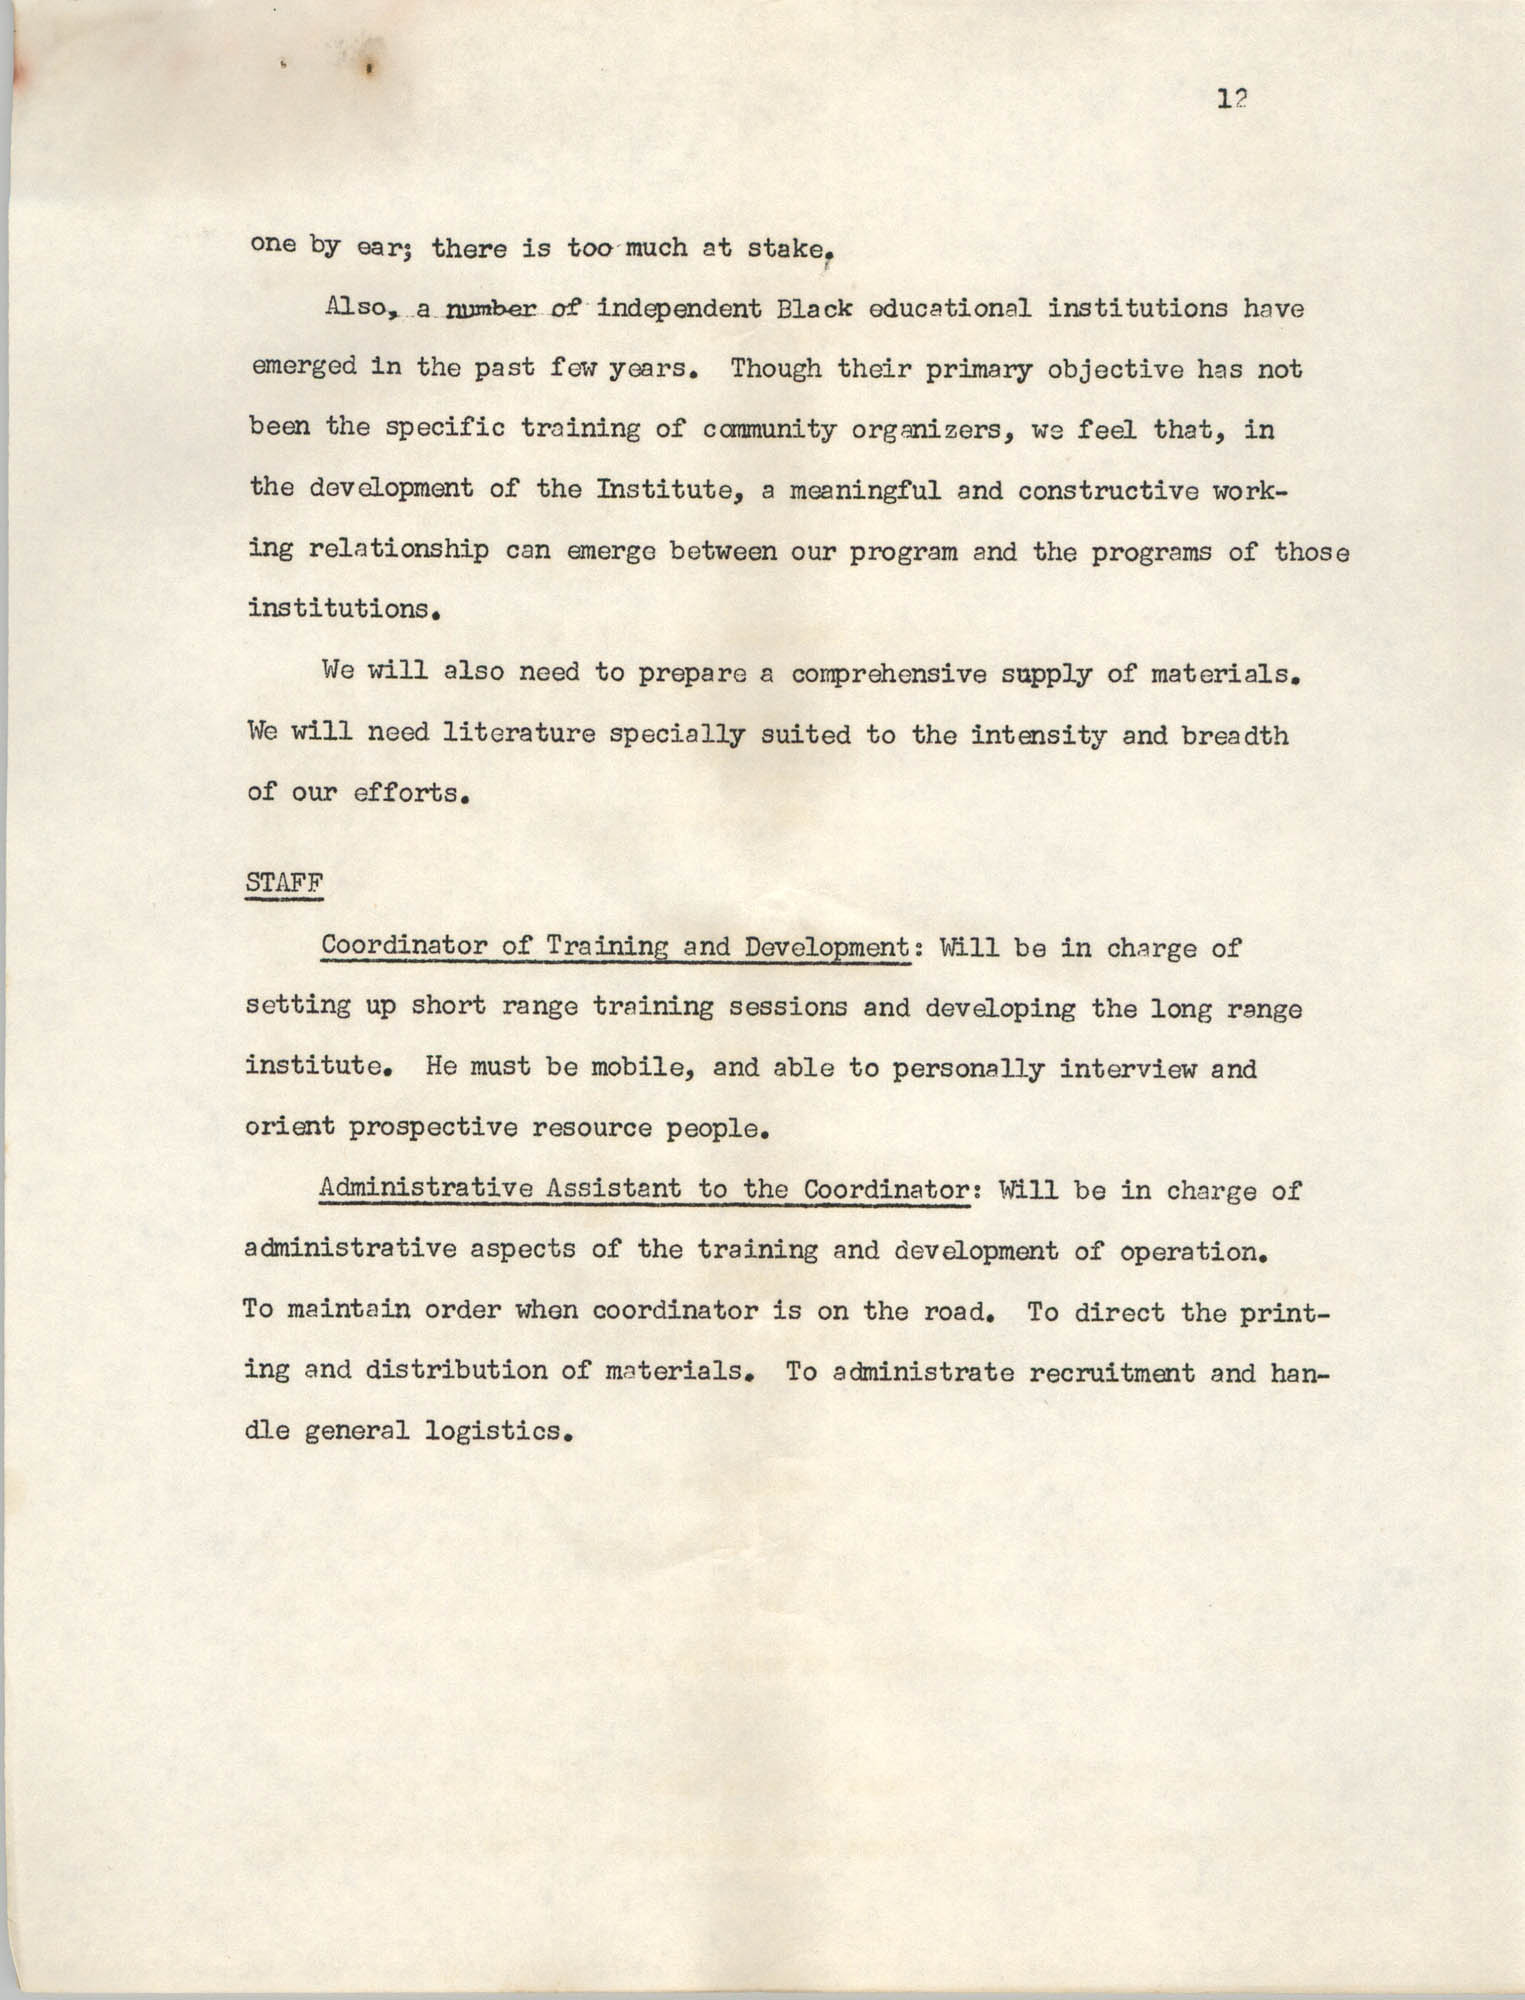 A Proposal for the Development of a Training Institute, Page 12